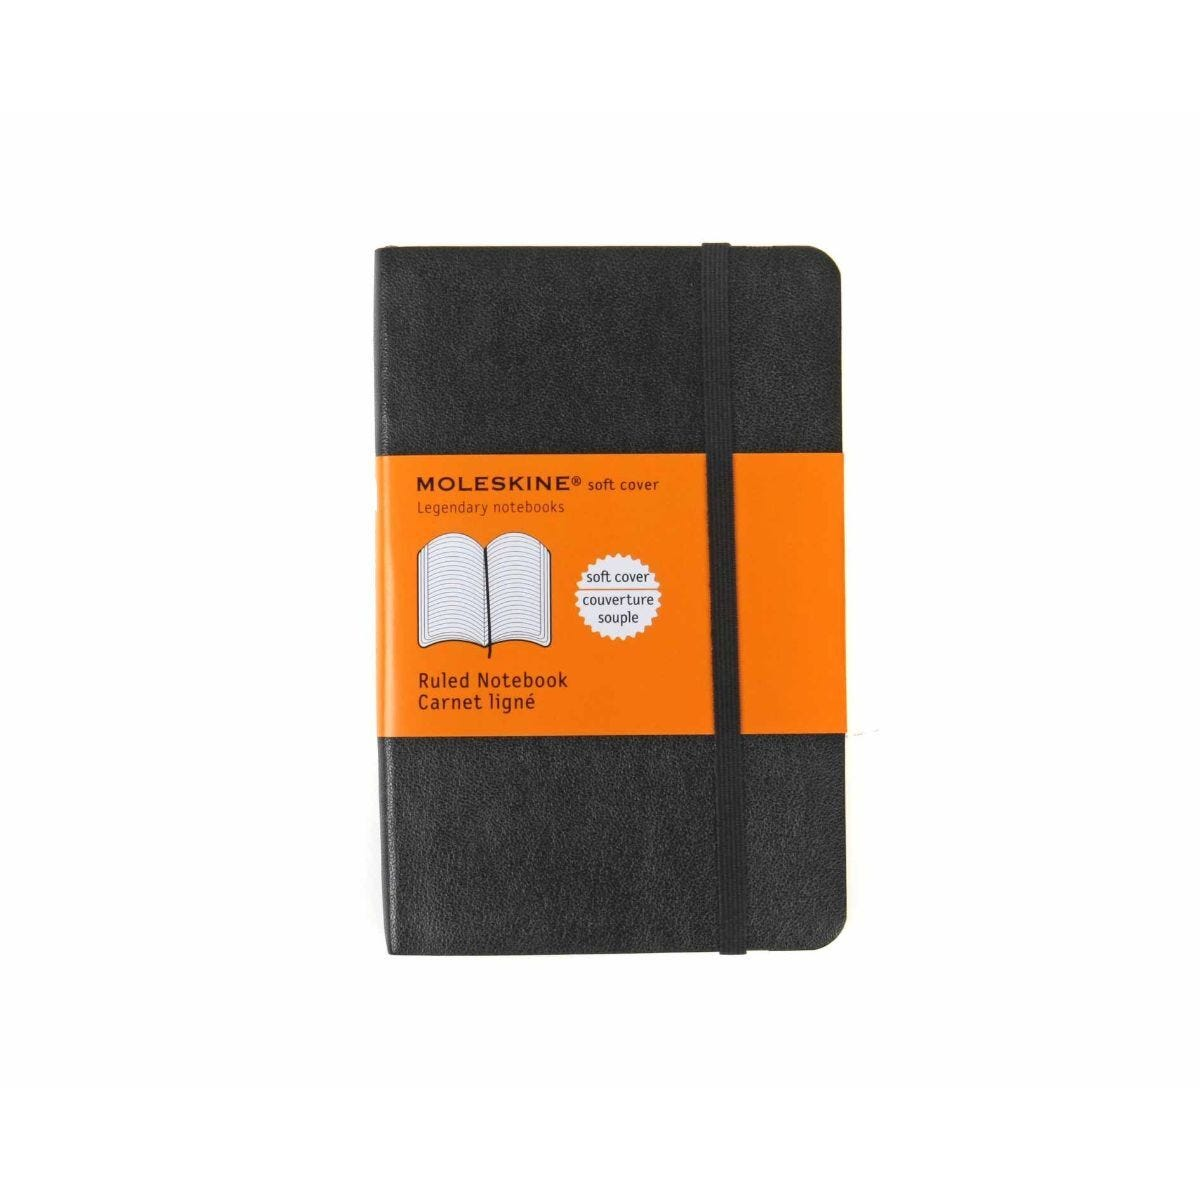 Moleskine Soft Cover Ruled Pocket Notebook 192 Pages 96 Sheets